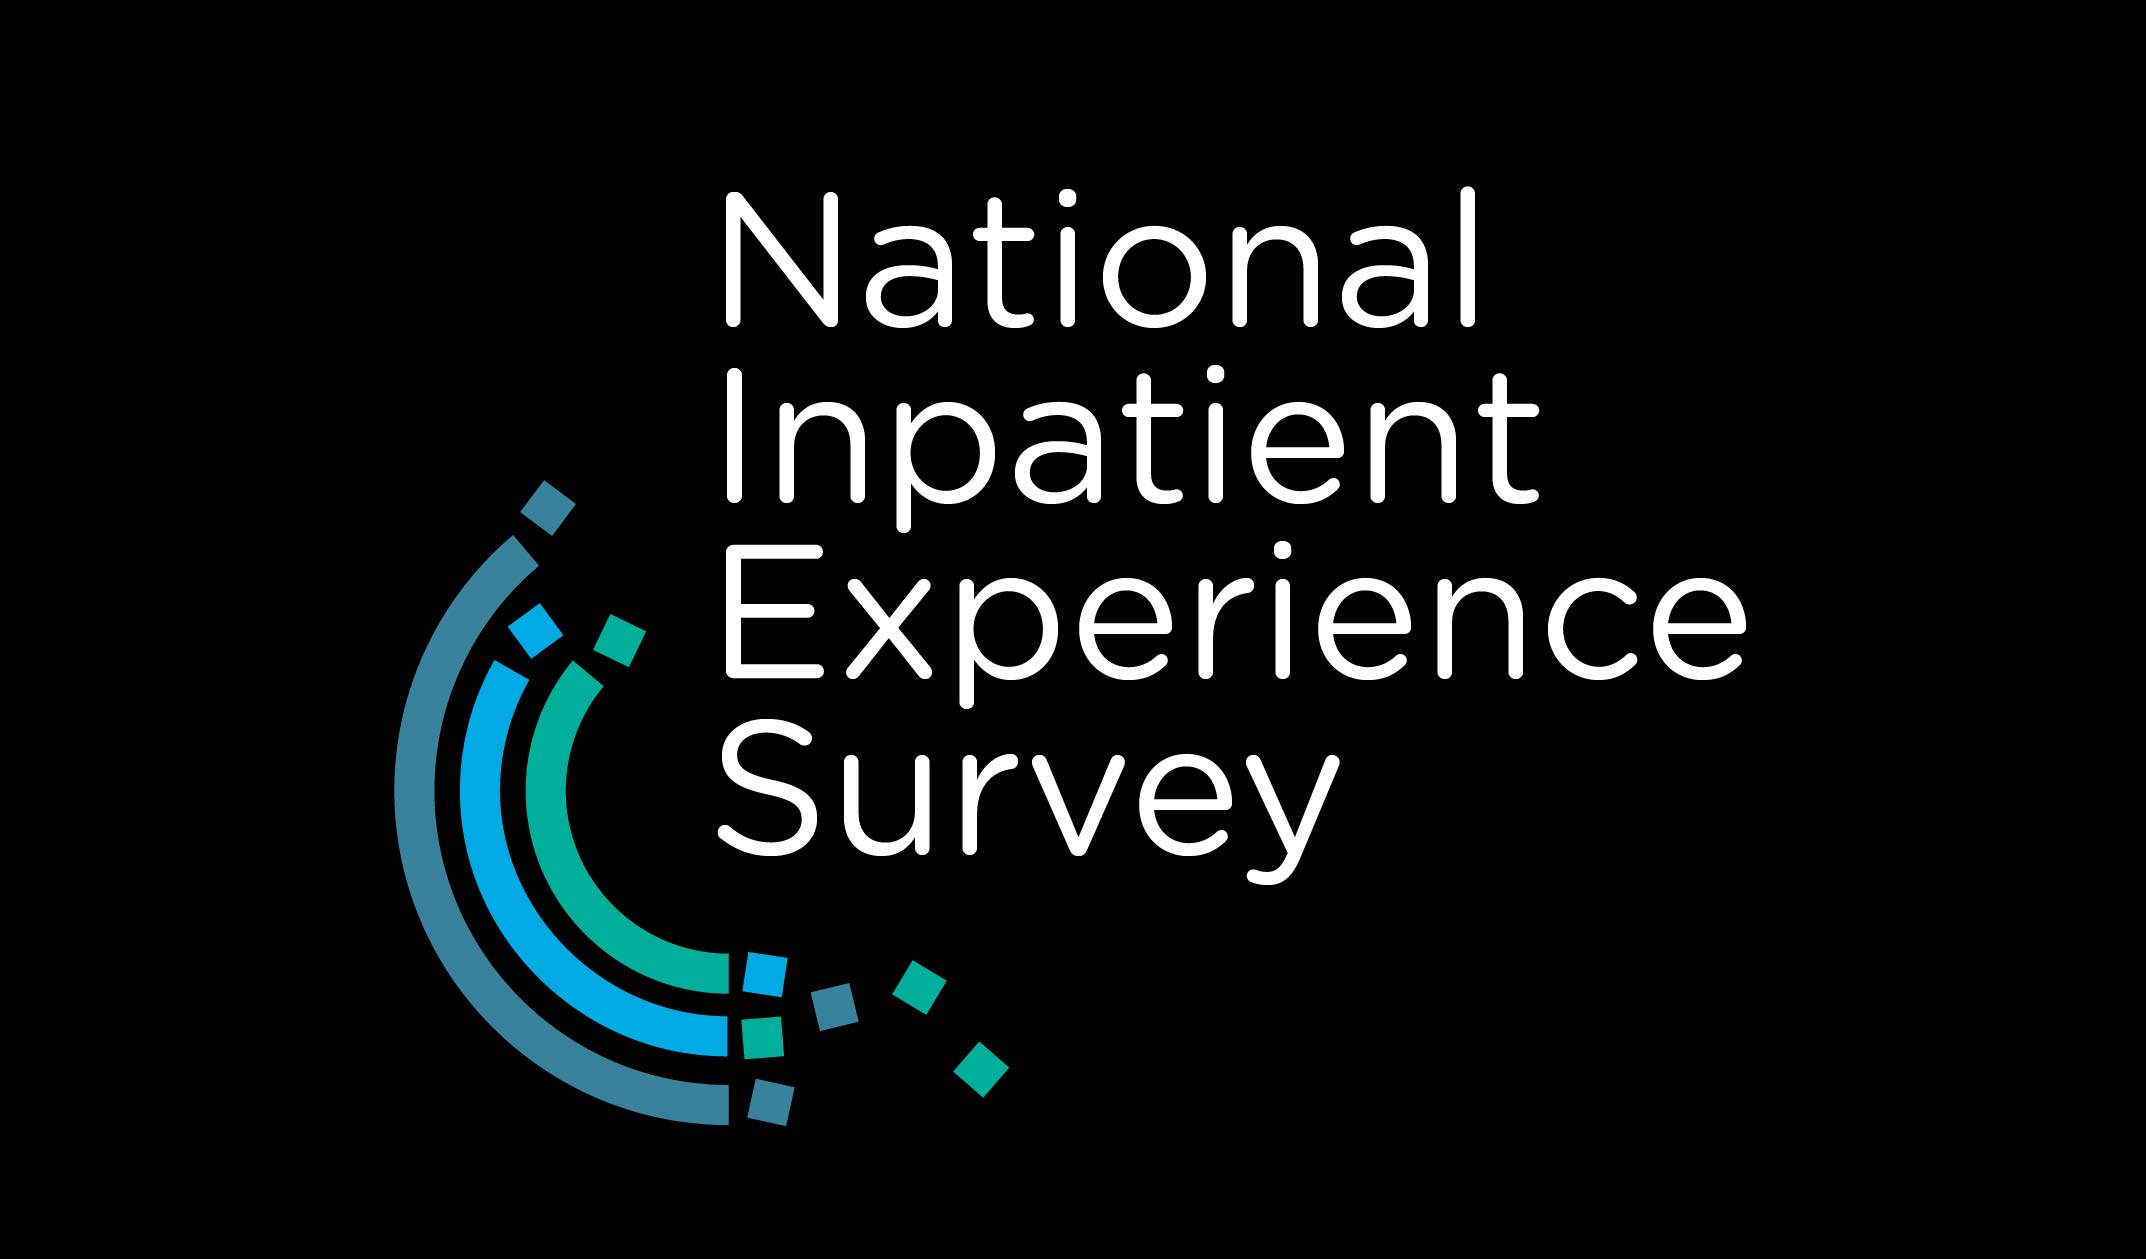 Launch of the 2021 National Inpatient Experience Survey